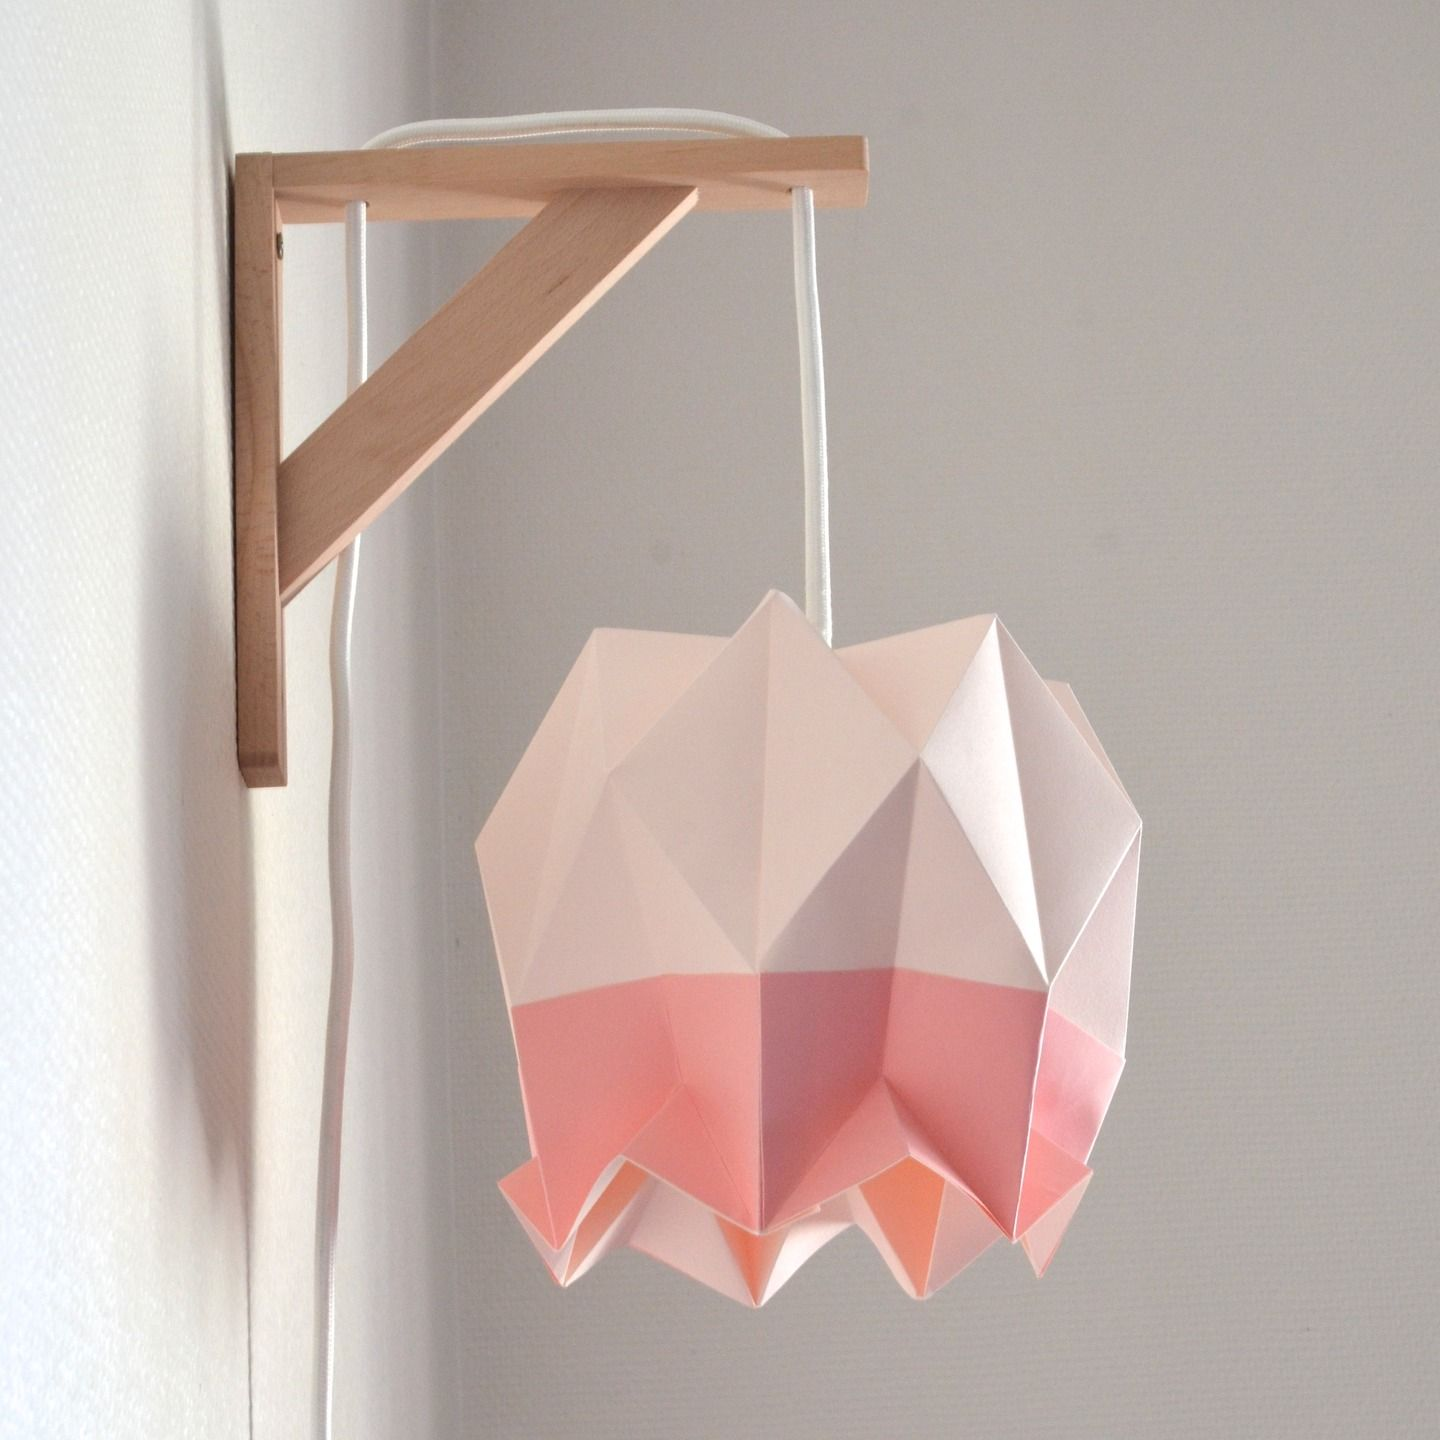 Applique suspension lotus d 39 inspiration scandinave for Suspension luminaire papier